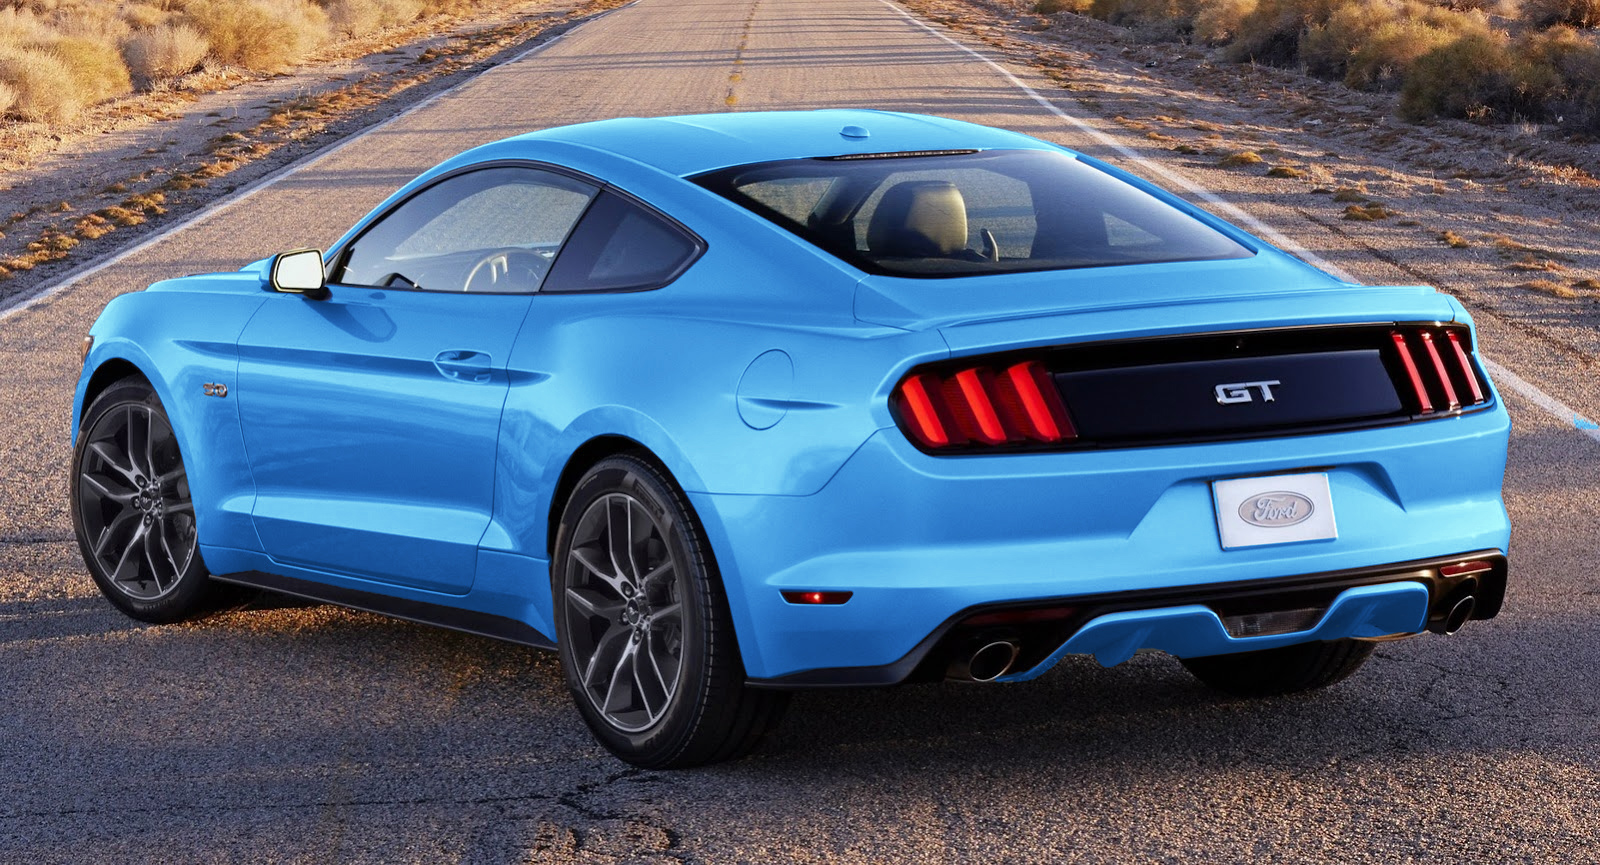 2015 Mustang Colors >> 2015 Mustang Colors Swatches Samples Page 3 2015 S550 Mustang